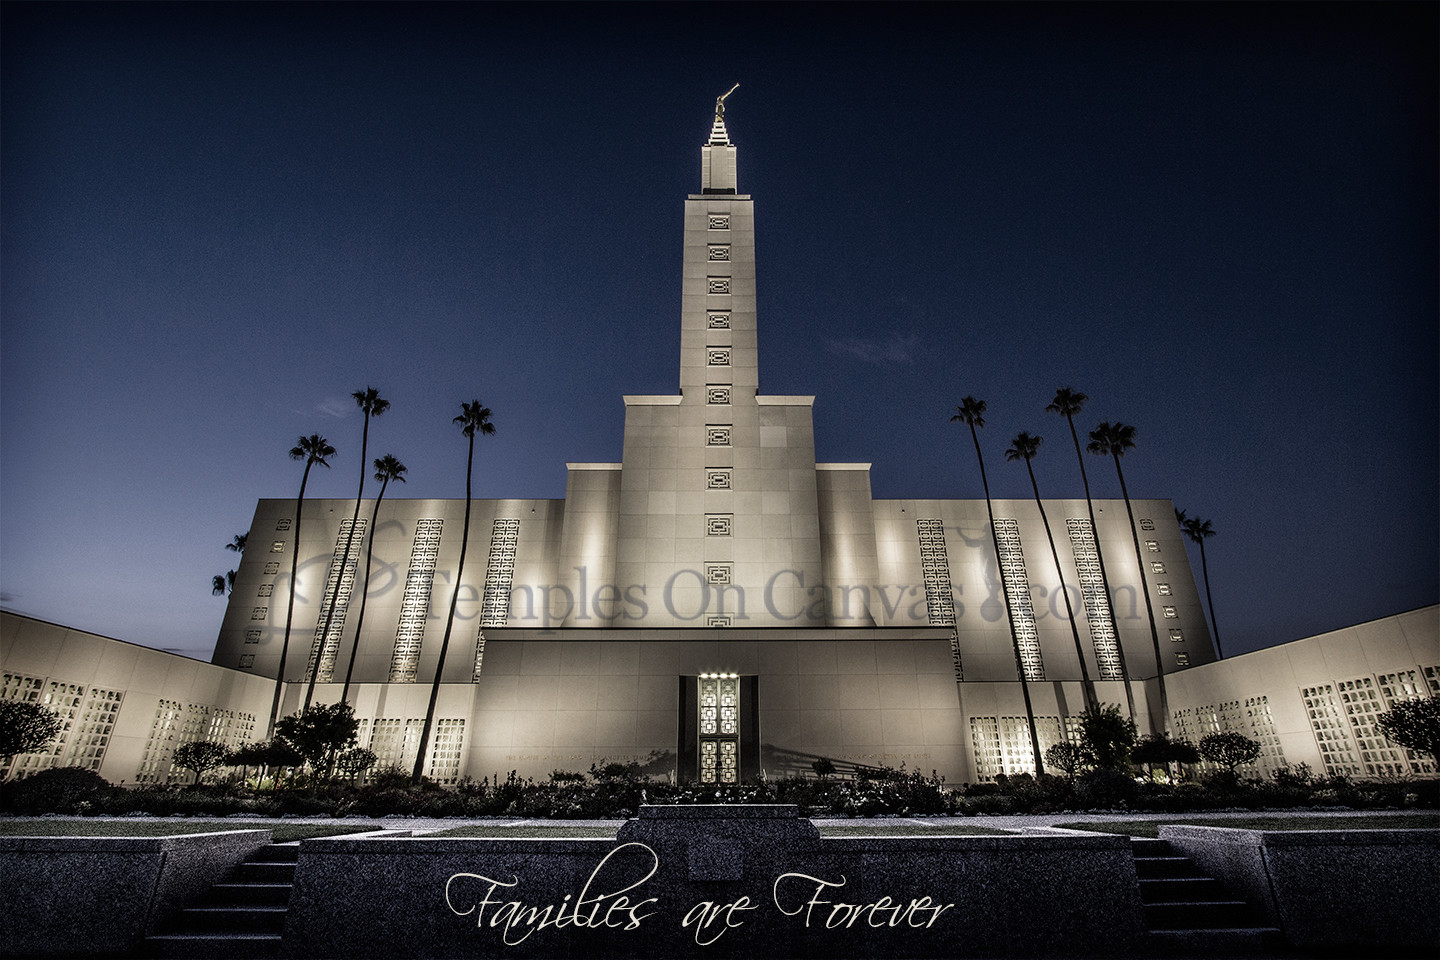 Los Angeles California LDS Temple - Eventide - Tinted Black & White